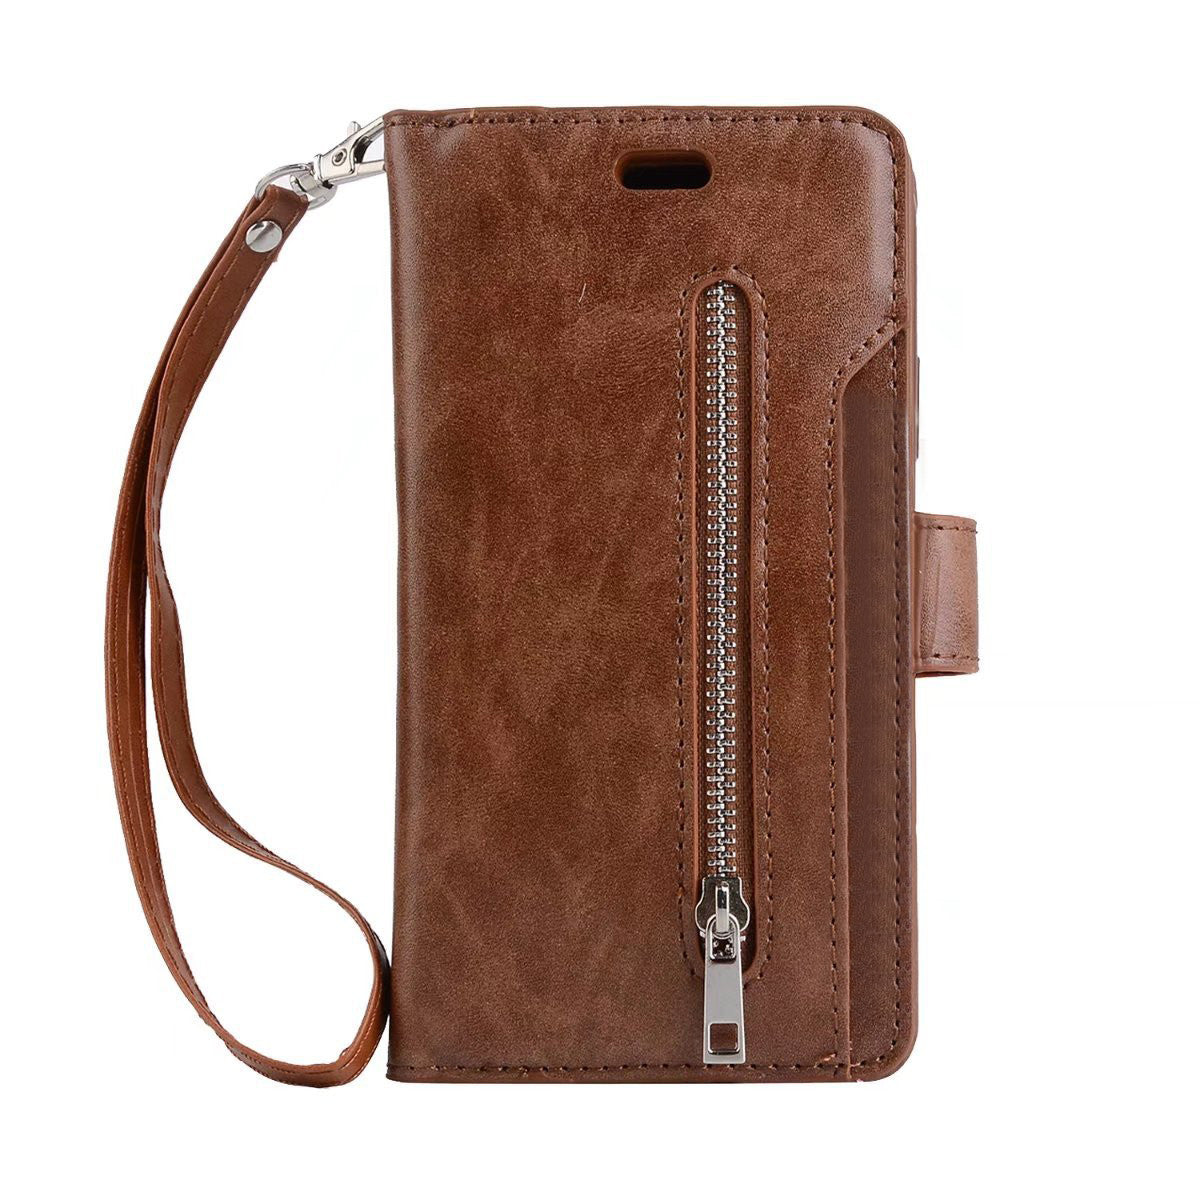 Phone Case Dual Layers PU Leather Card Zipper Wallet Phone Case Cover for iPhone 8 Plus / 7 Plus